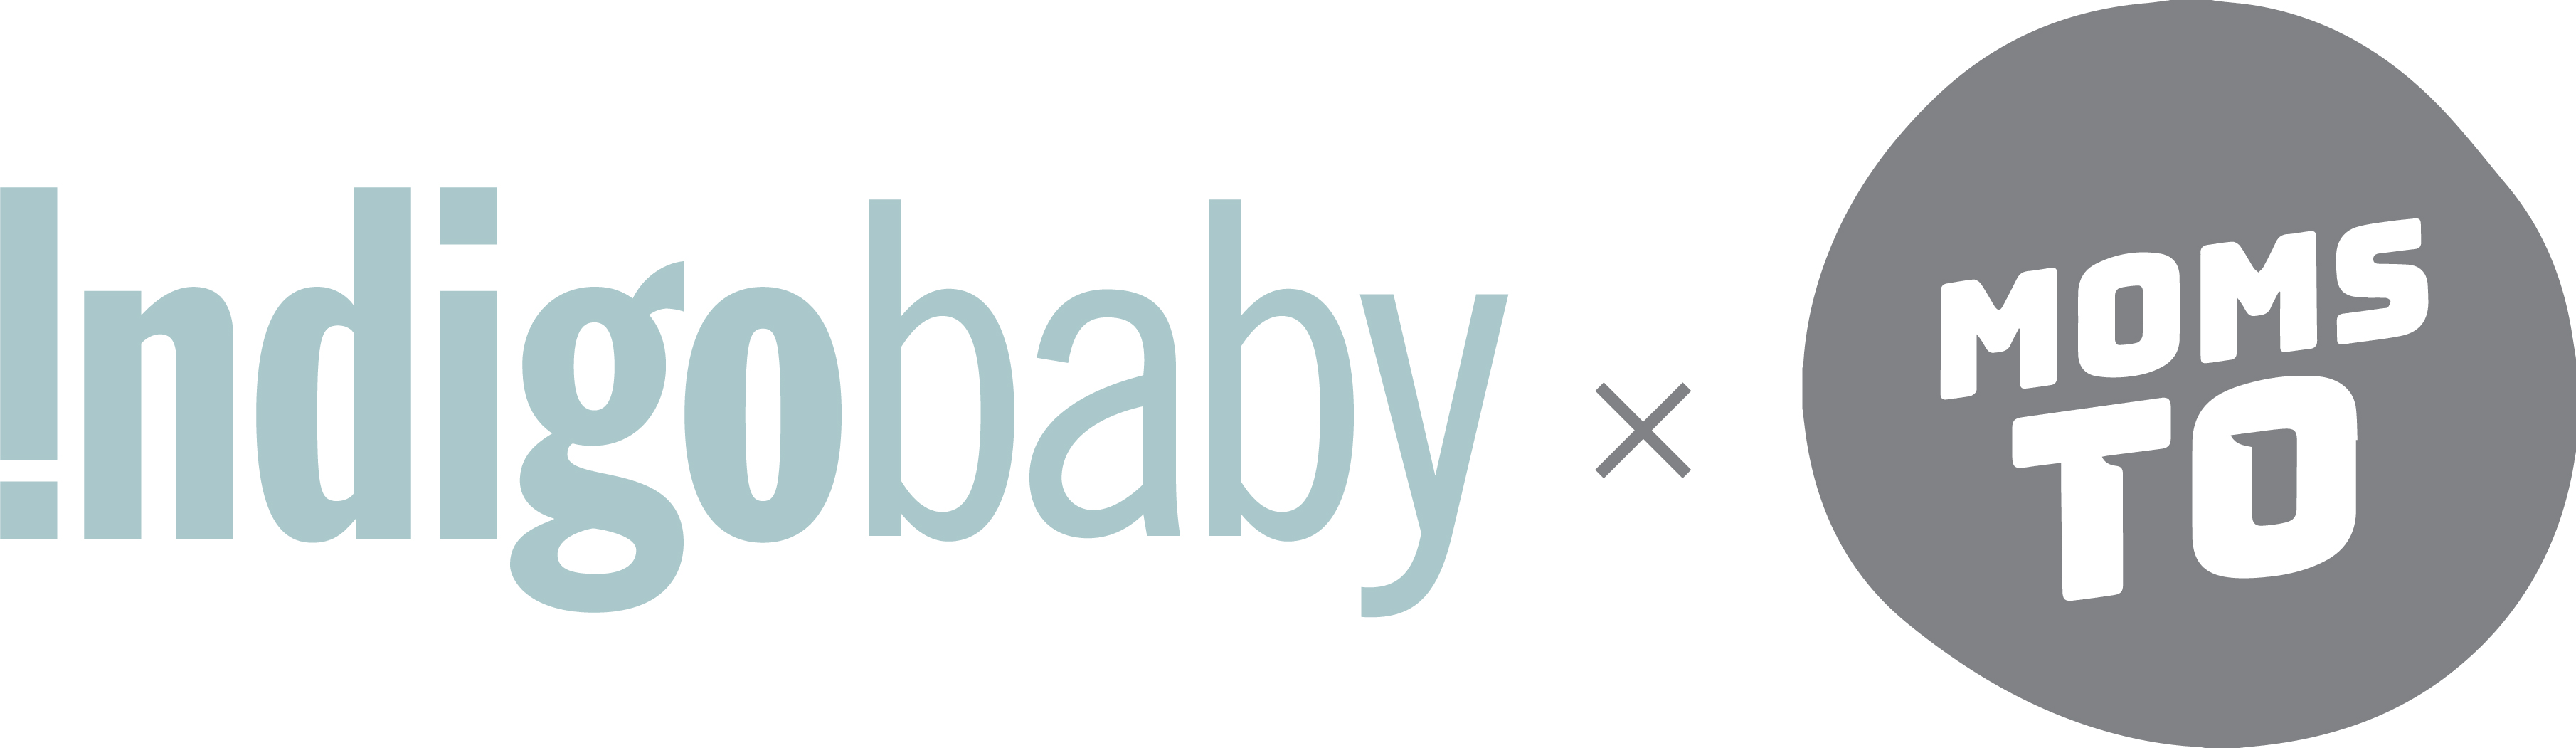 Indigobaby x MomsTO Present: Changing The Postpartum Conversation